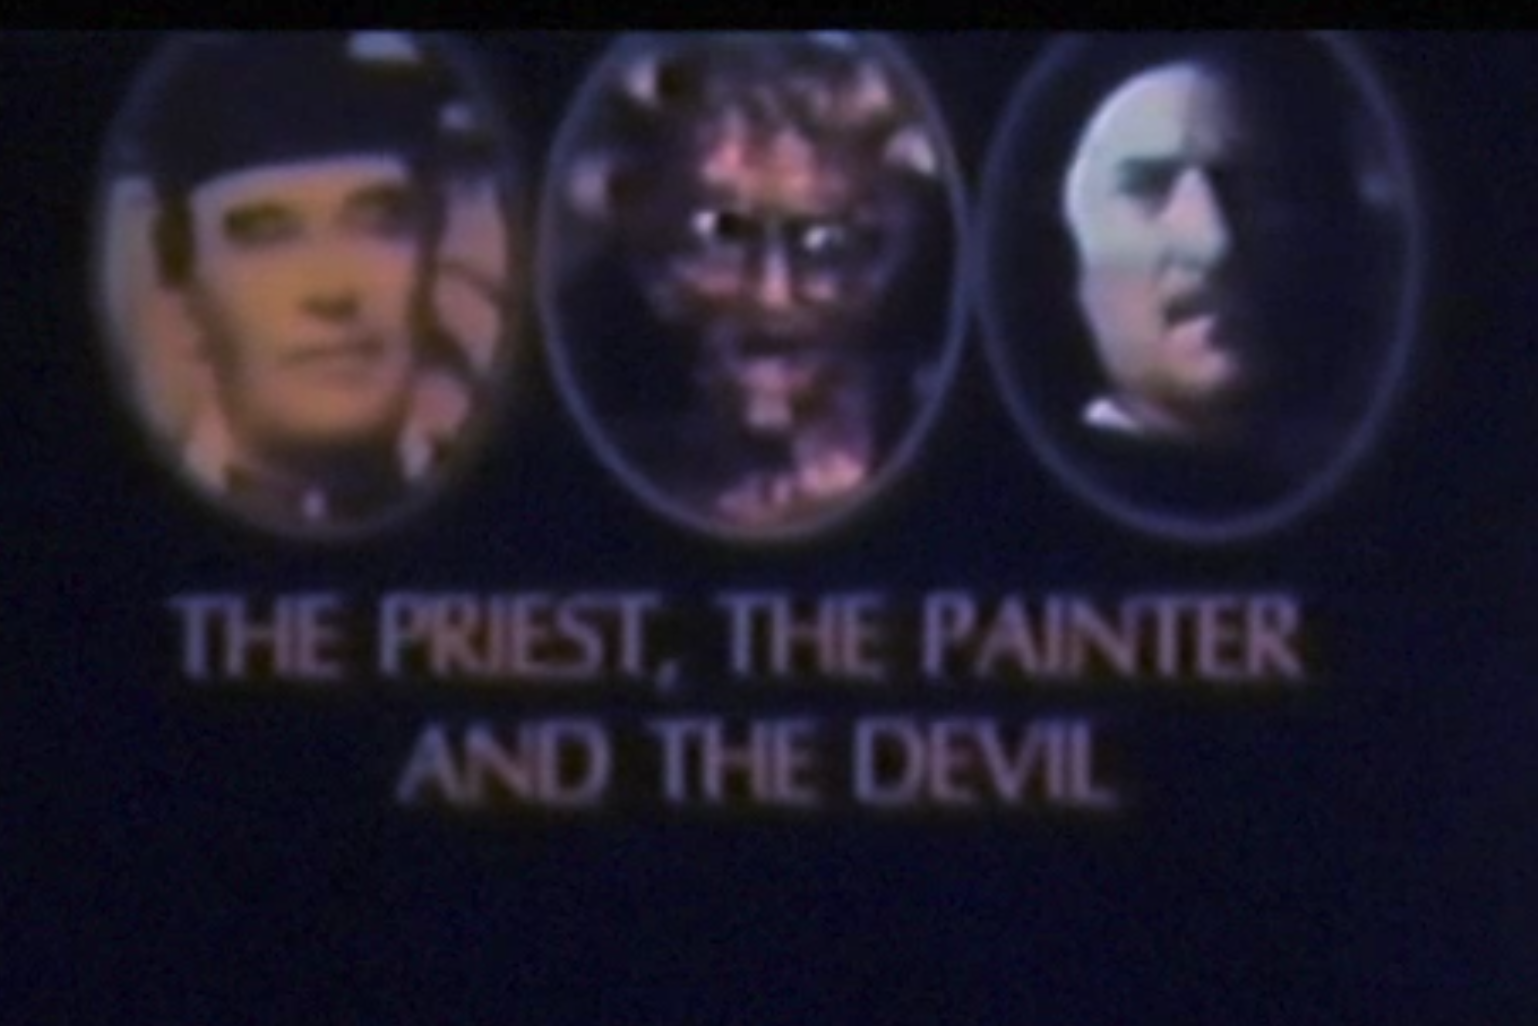 BBC Chronicle - 1974 The Priest, the Painter and the Devil